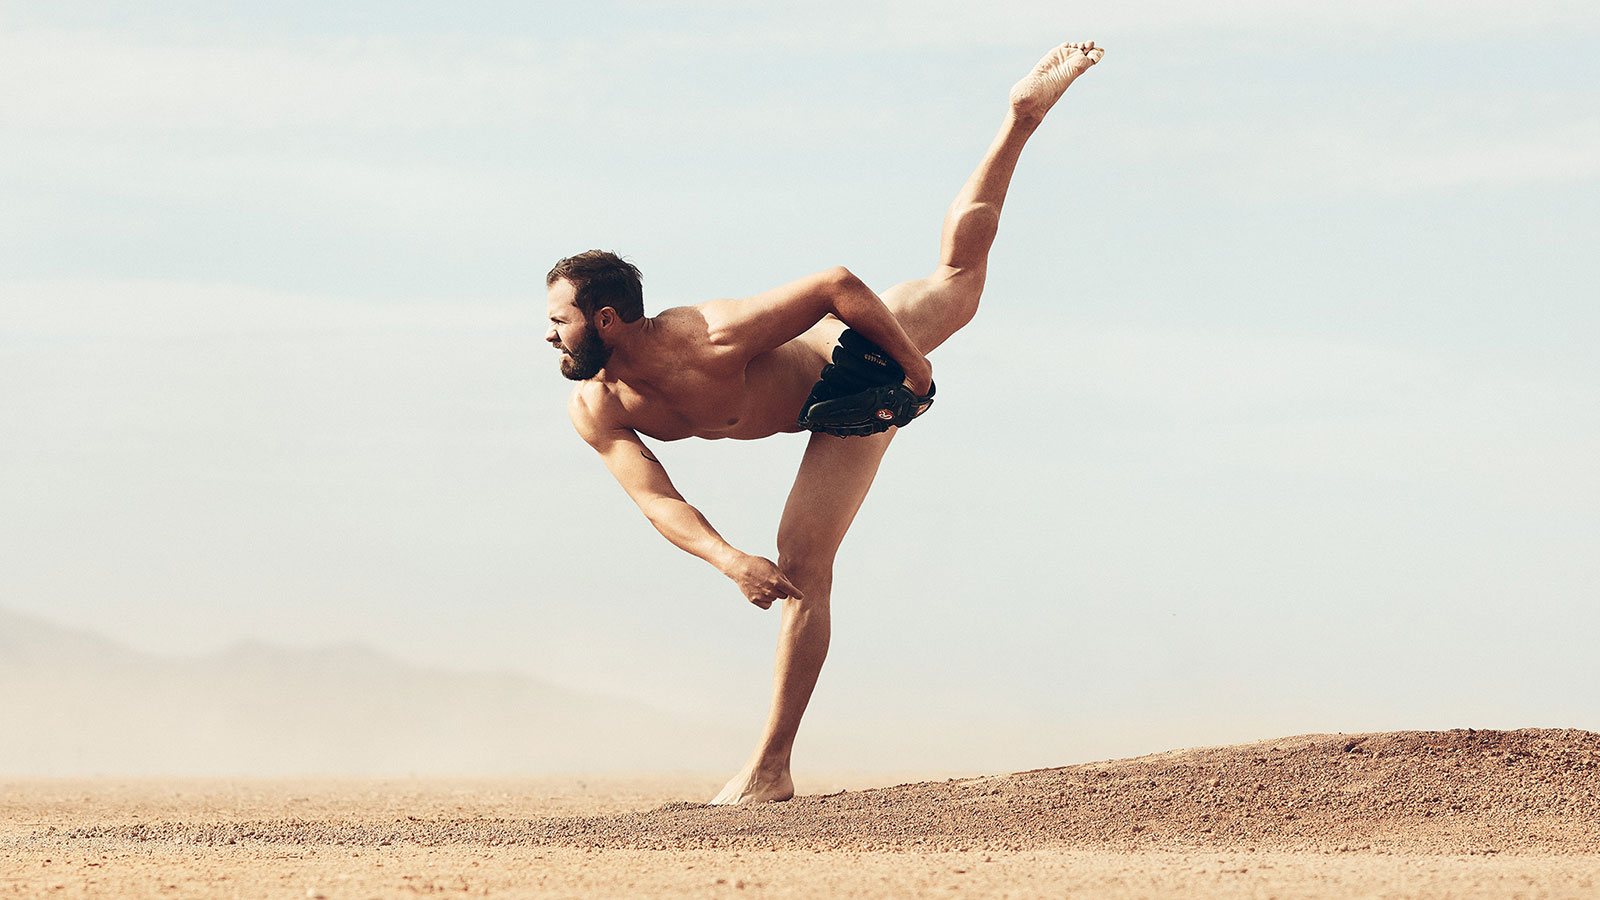 Jake Arrieta, MLB, featured in the Body Issue 2016: Fully Exposed on ESPN the Magazine